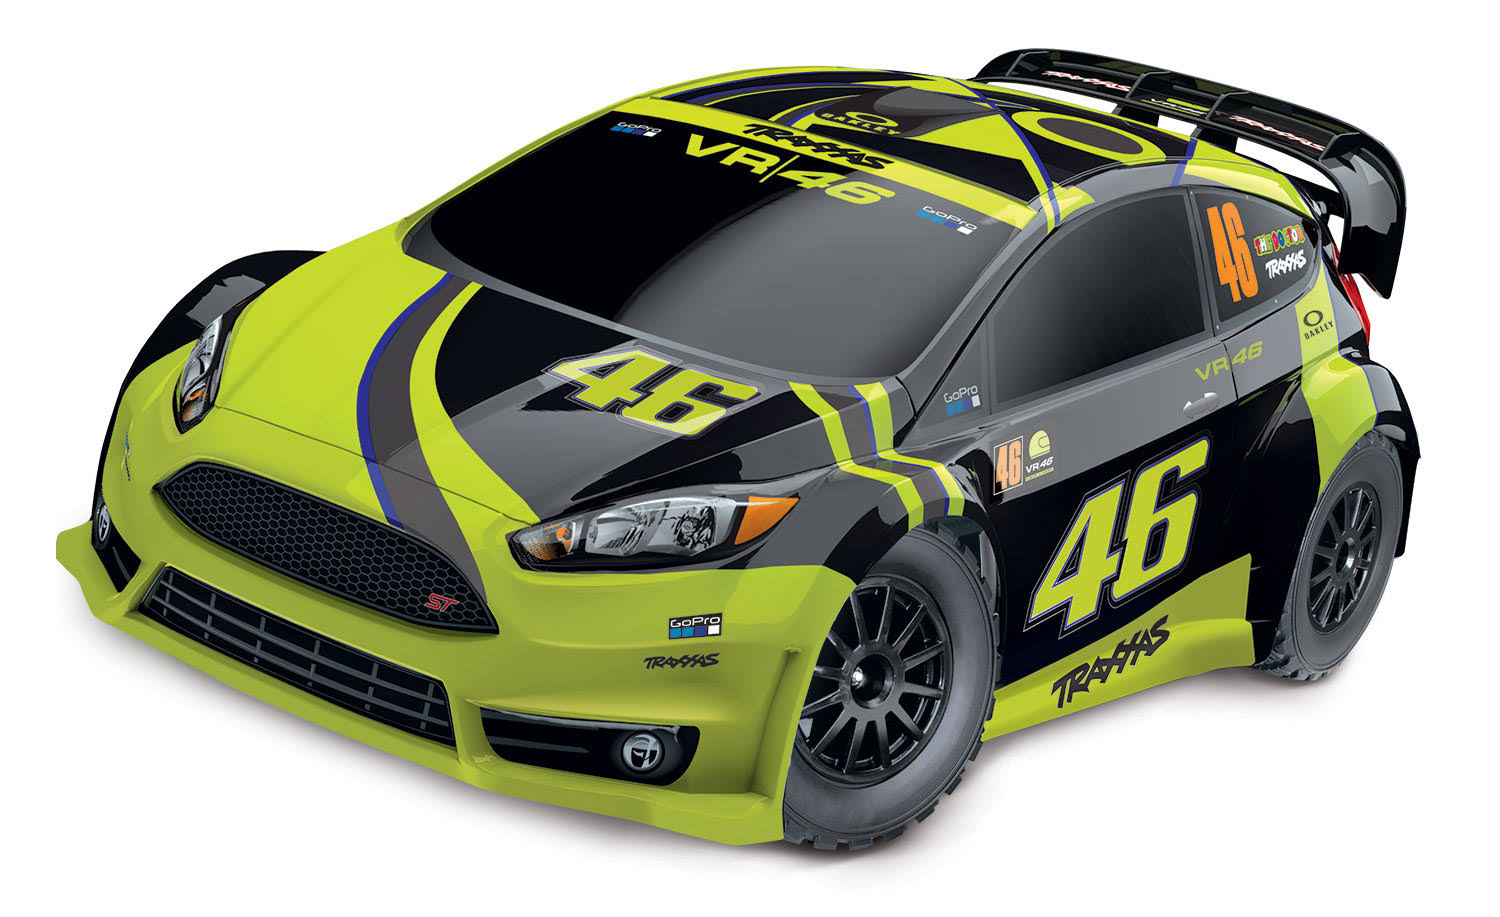 Traxxas 1/10 VR46 Ford Fiesta ST Rally